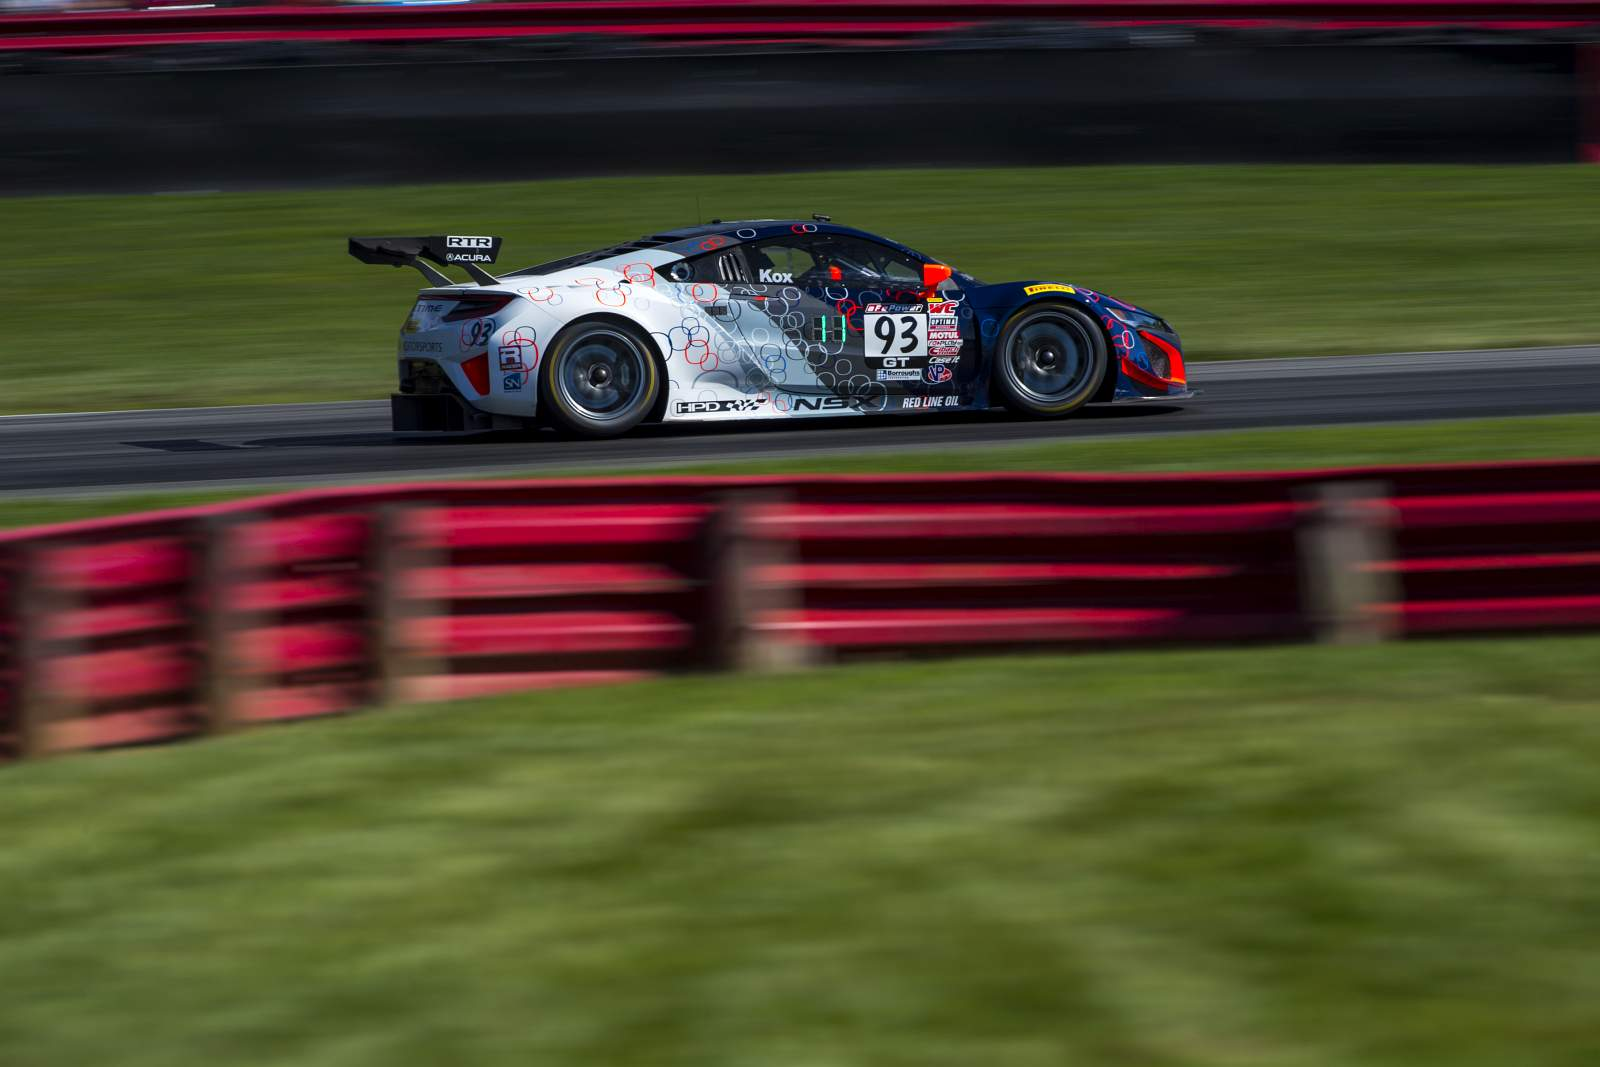 peter-kox-realtime-racing-pirelli-world-challenge-mid-ohio-51